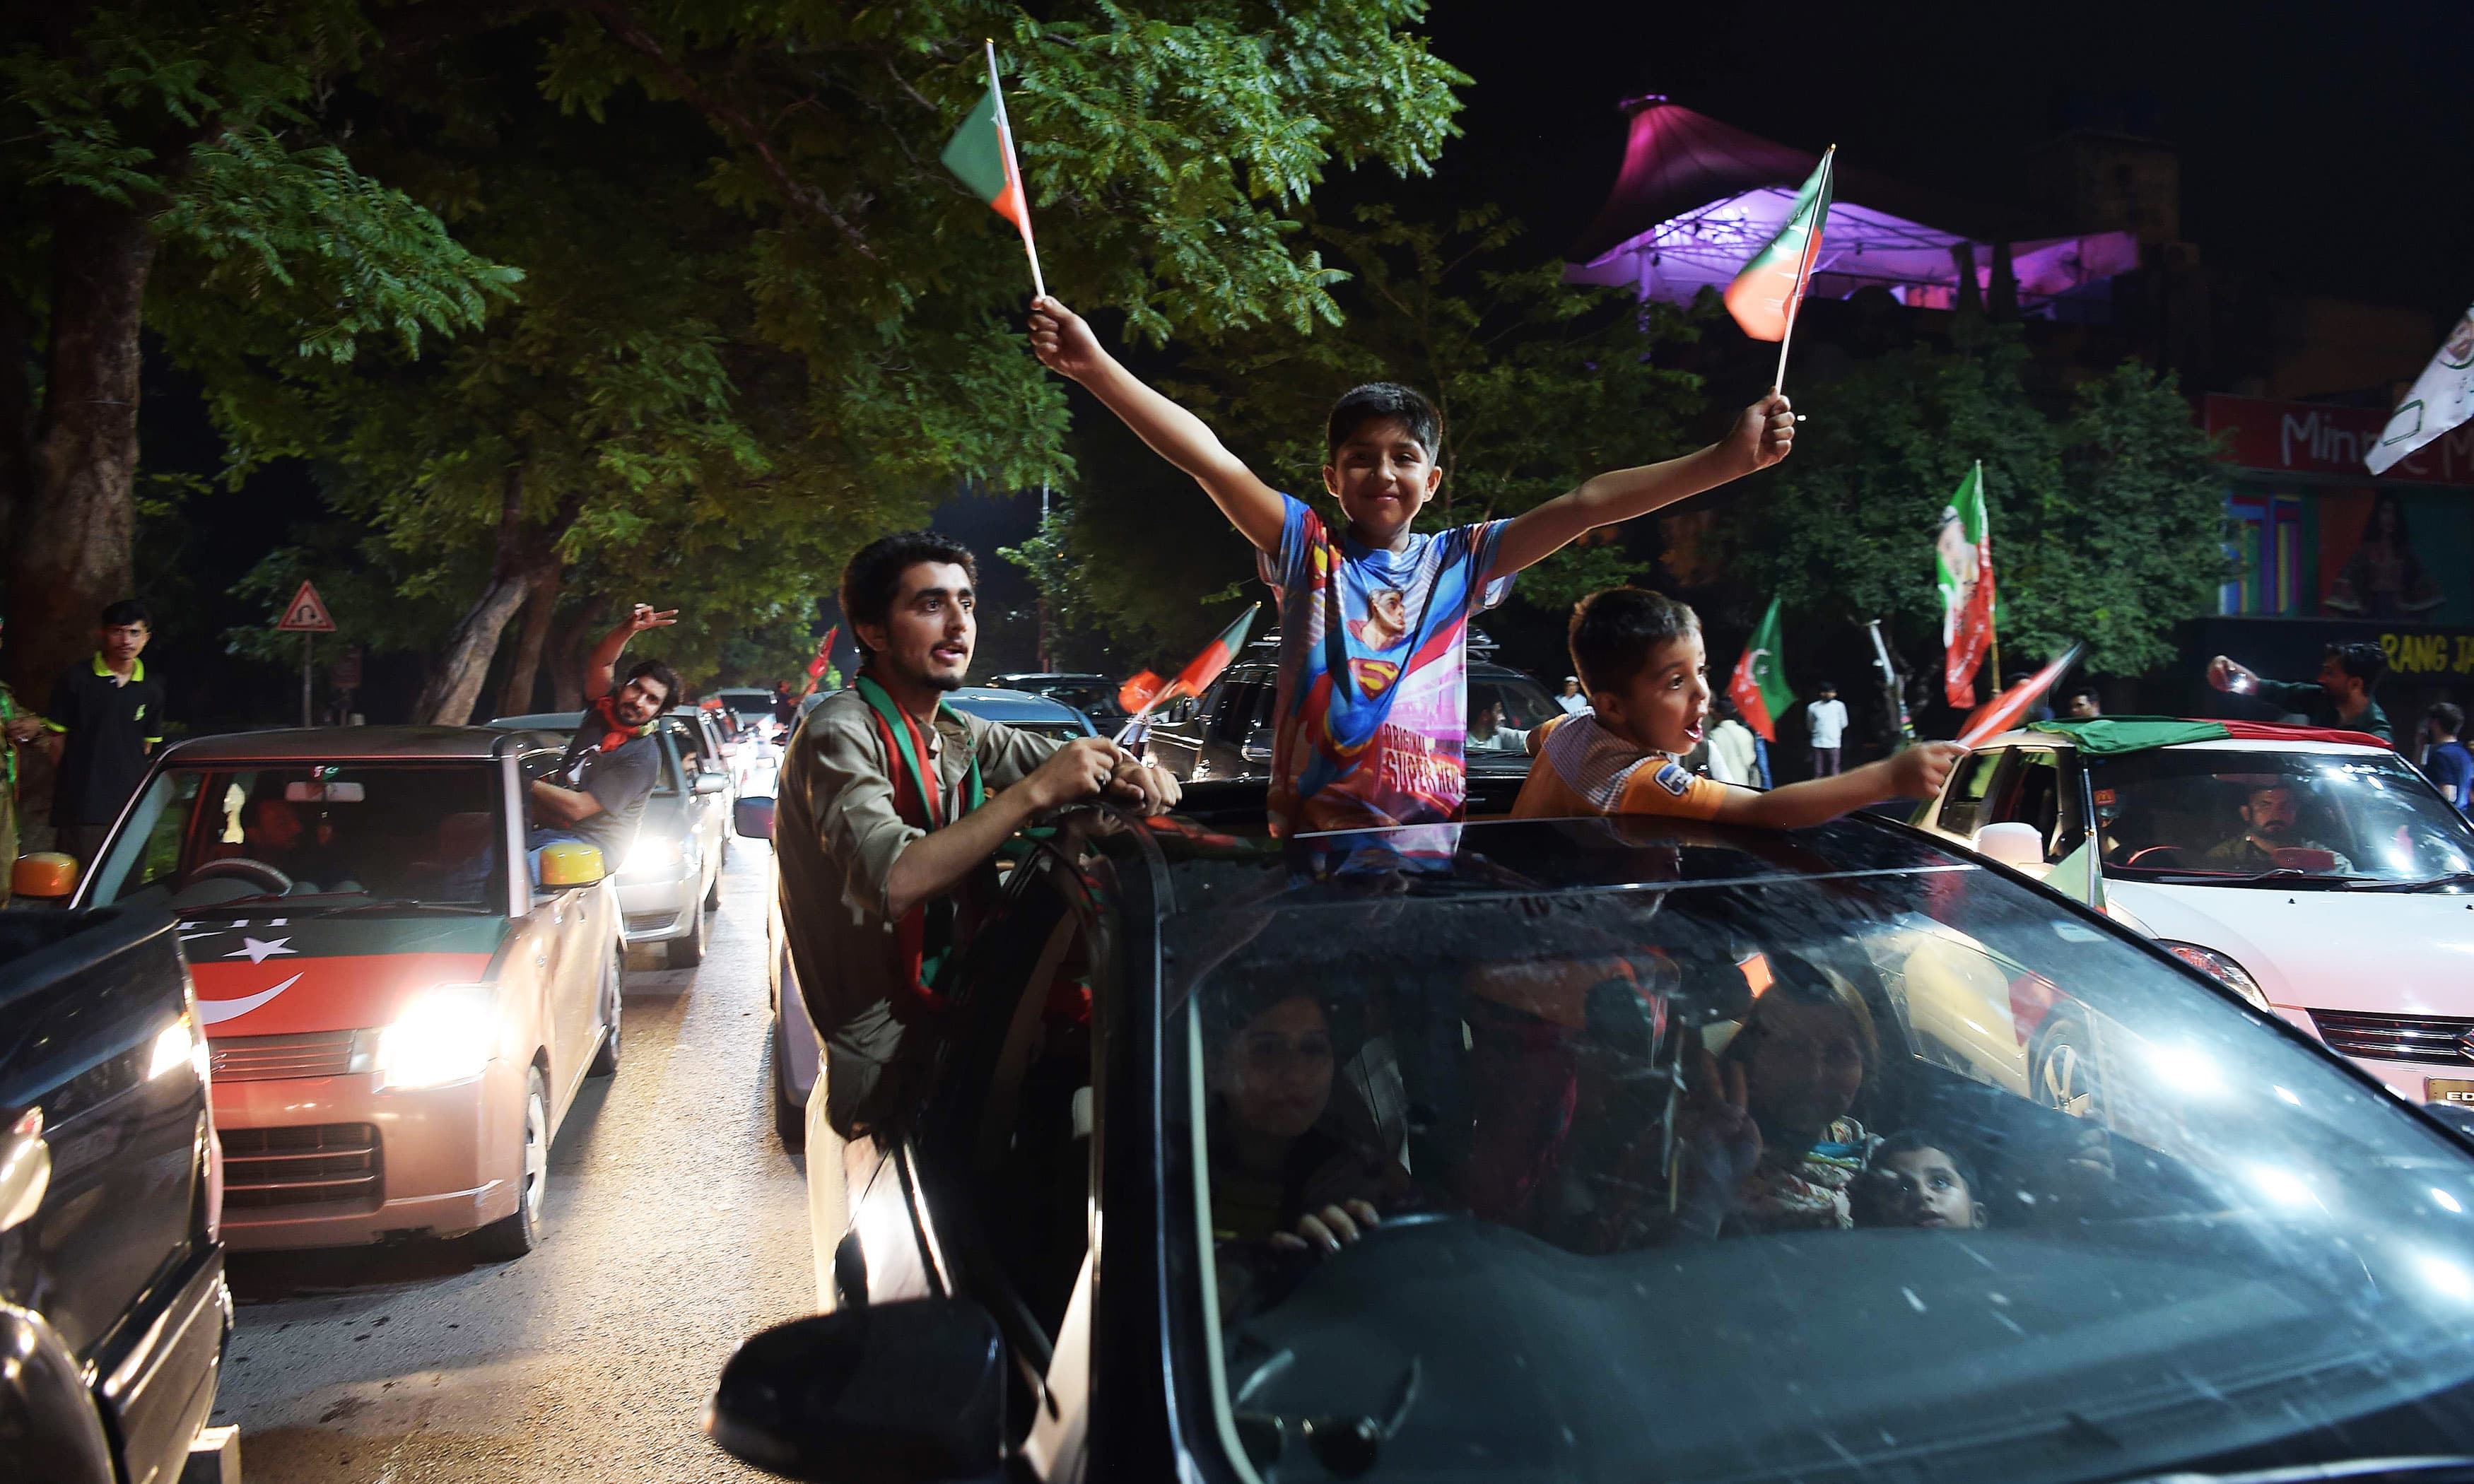 Imran Khan's supporter celebrate on a street in Islamabad. —AFP